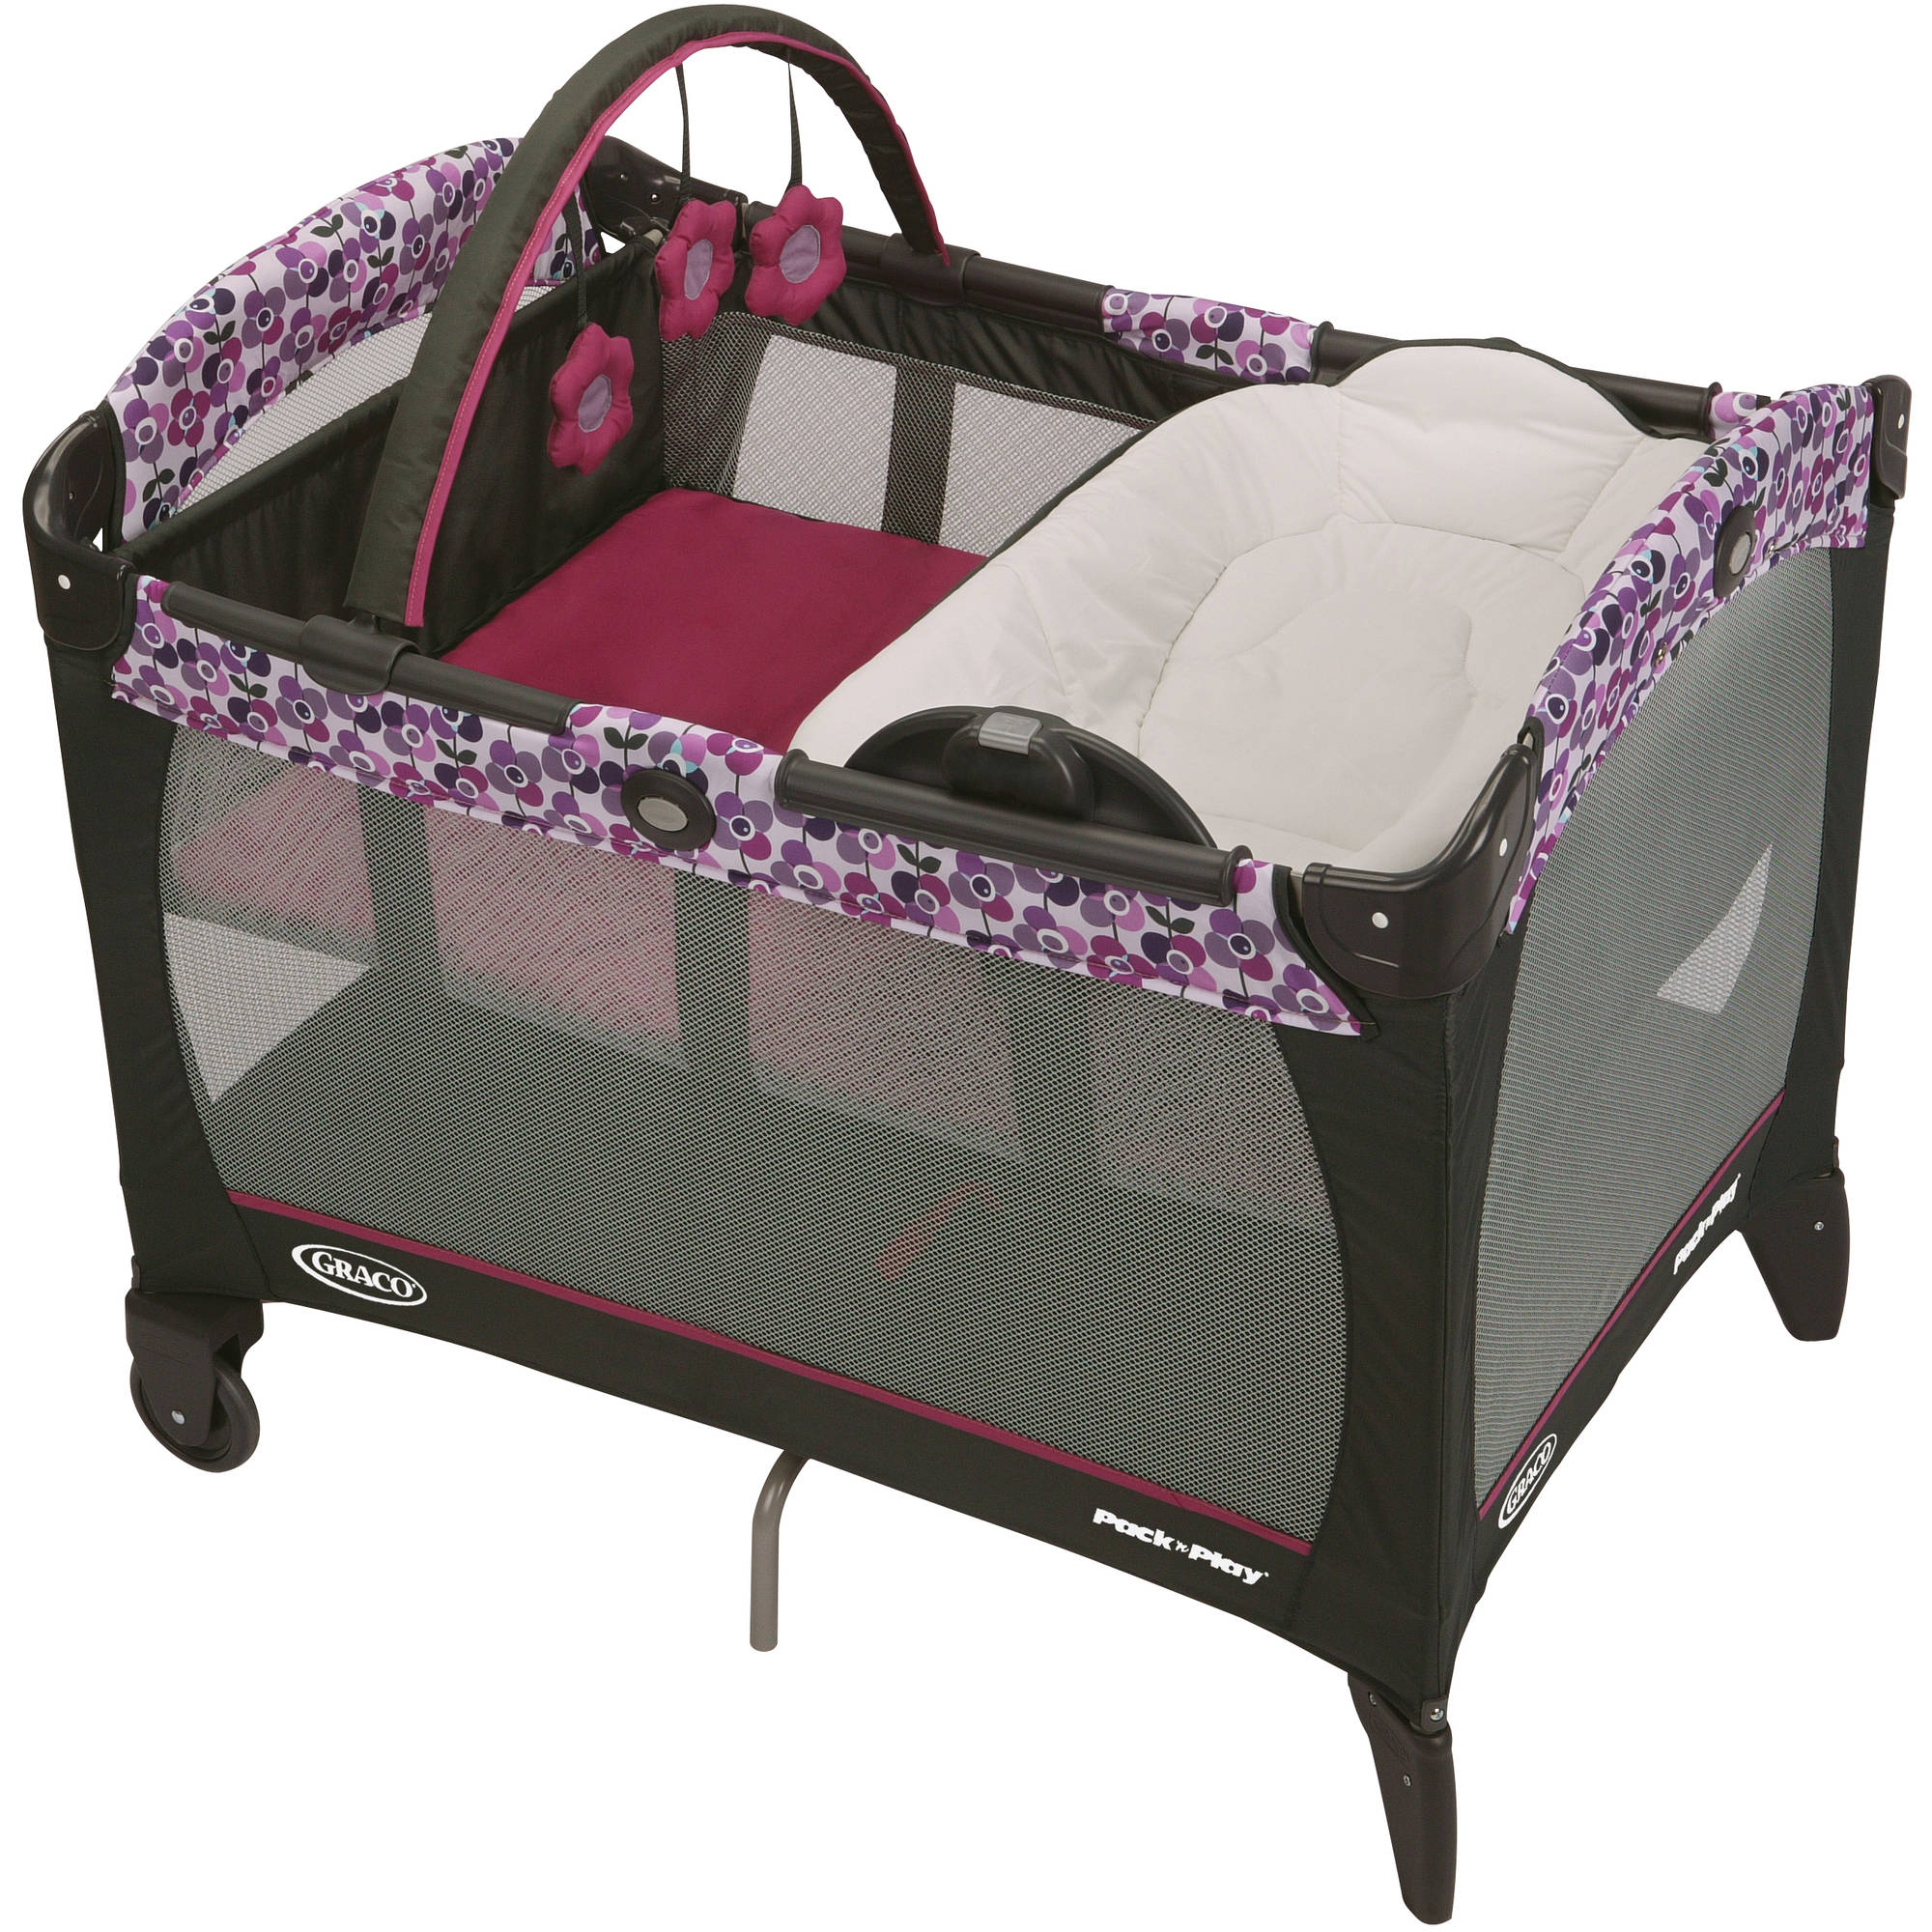 Graco Pack 'n Play Play Pen with Reversible Napper and Changer, Pammie by Graco